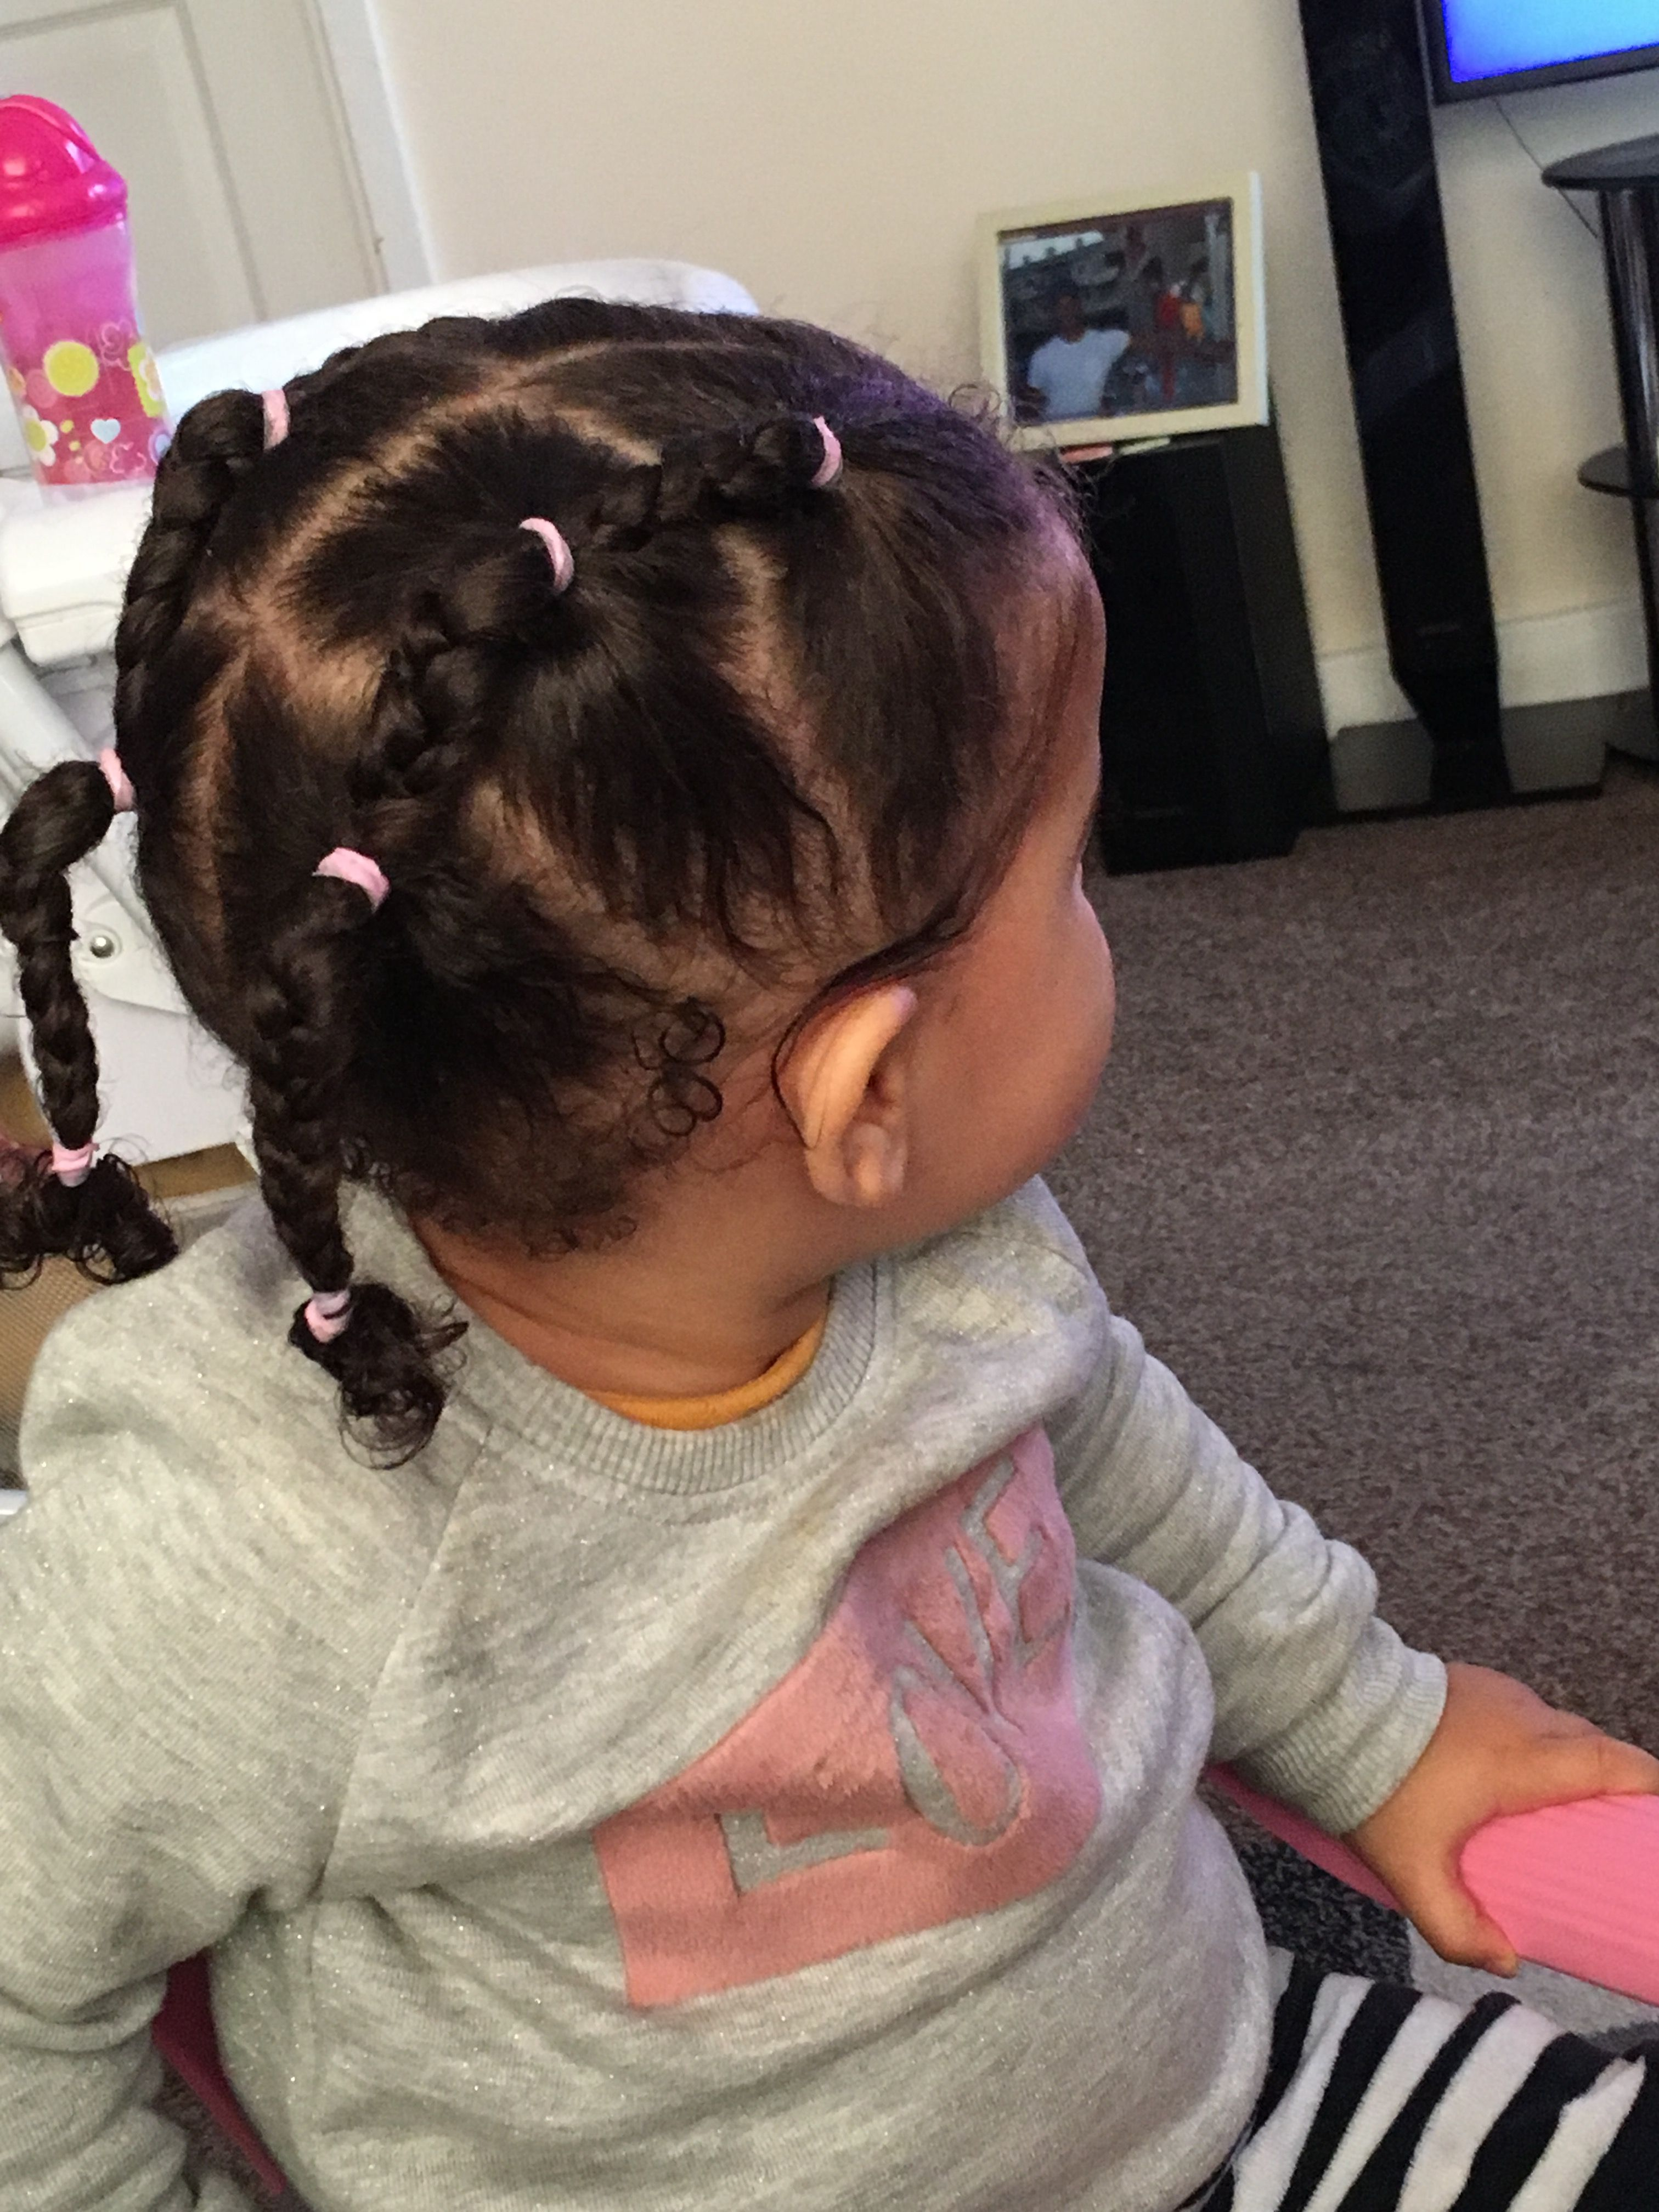 Mixed Toddler Hairstyles Kids Curly Hairstyles Baby Hairstyles Cute Toddler Hairstyles